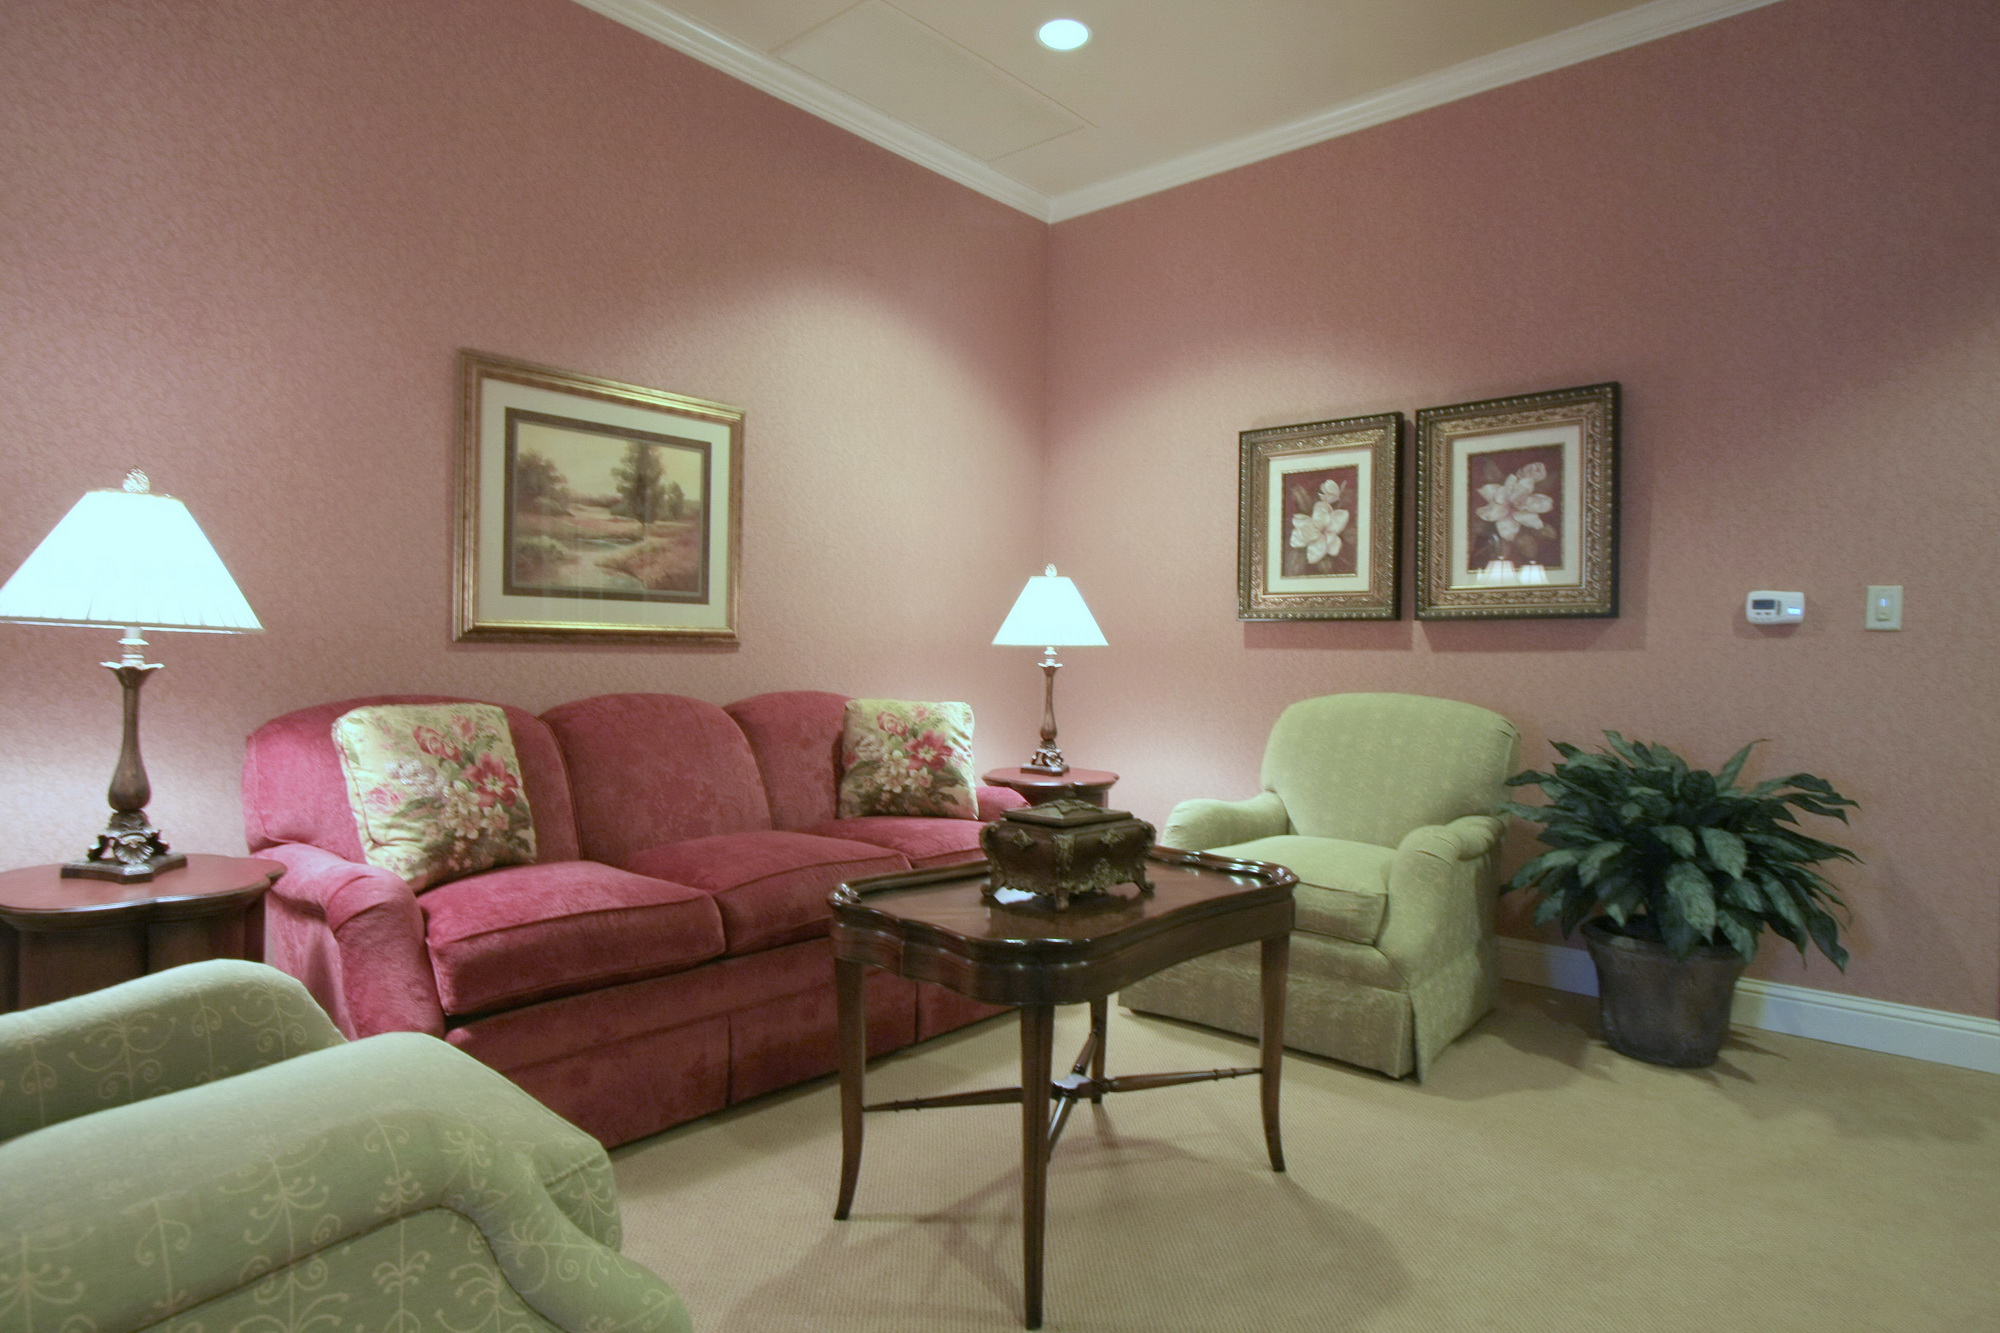 Funeral home design decor 28 images 10 best images about c j williams mortuary services - Funeral home interior design ...